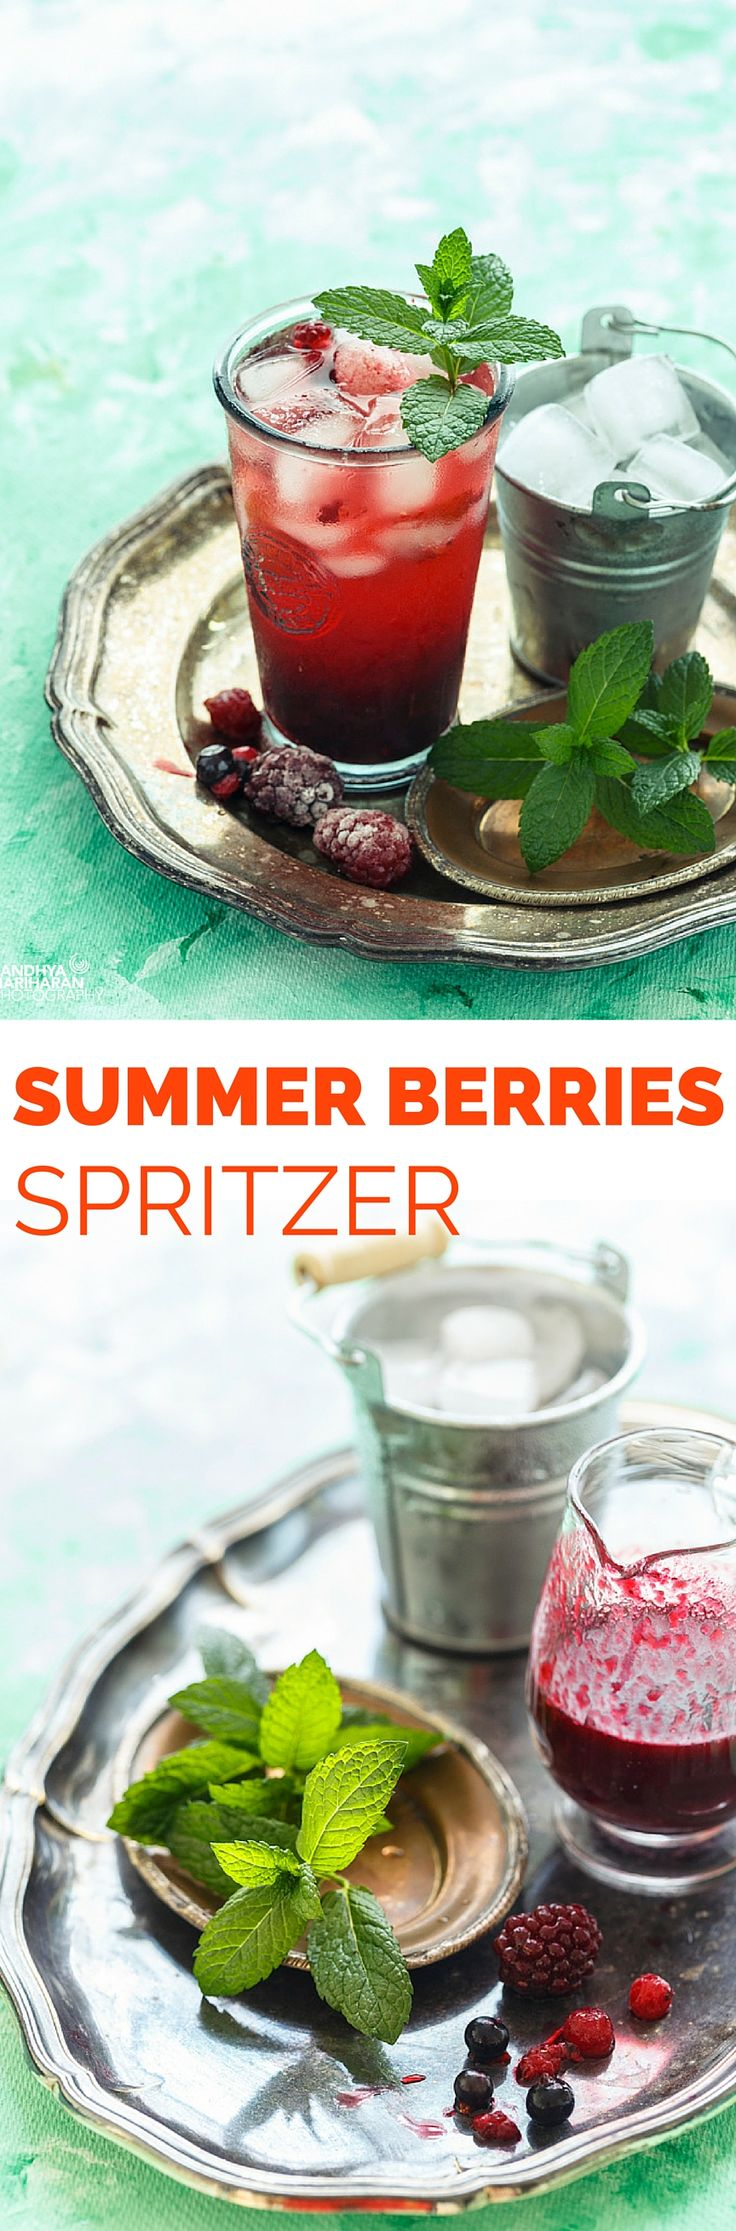 Grab a Bag of Frozen Mixed Berries and enjoy a Summer Berries Spritzer anytime of the year in a jiffy.